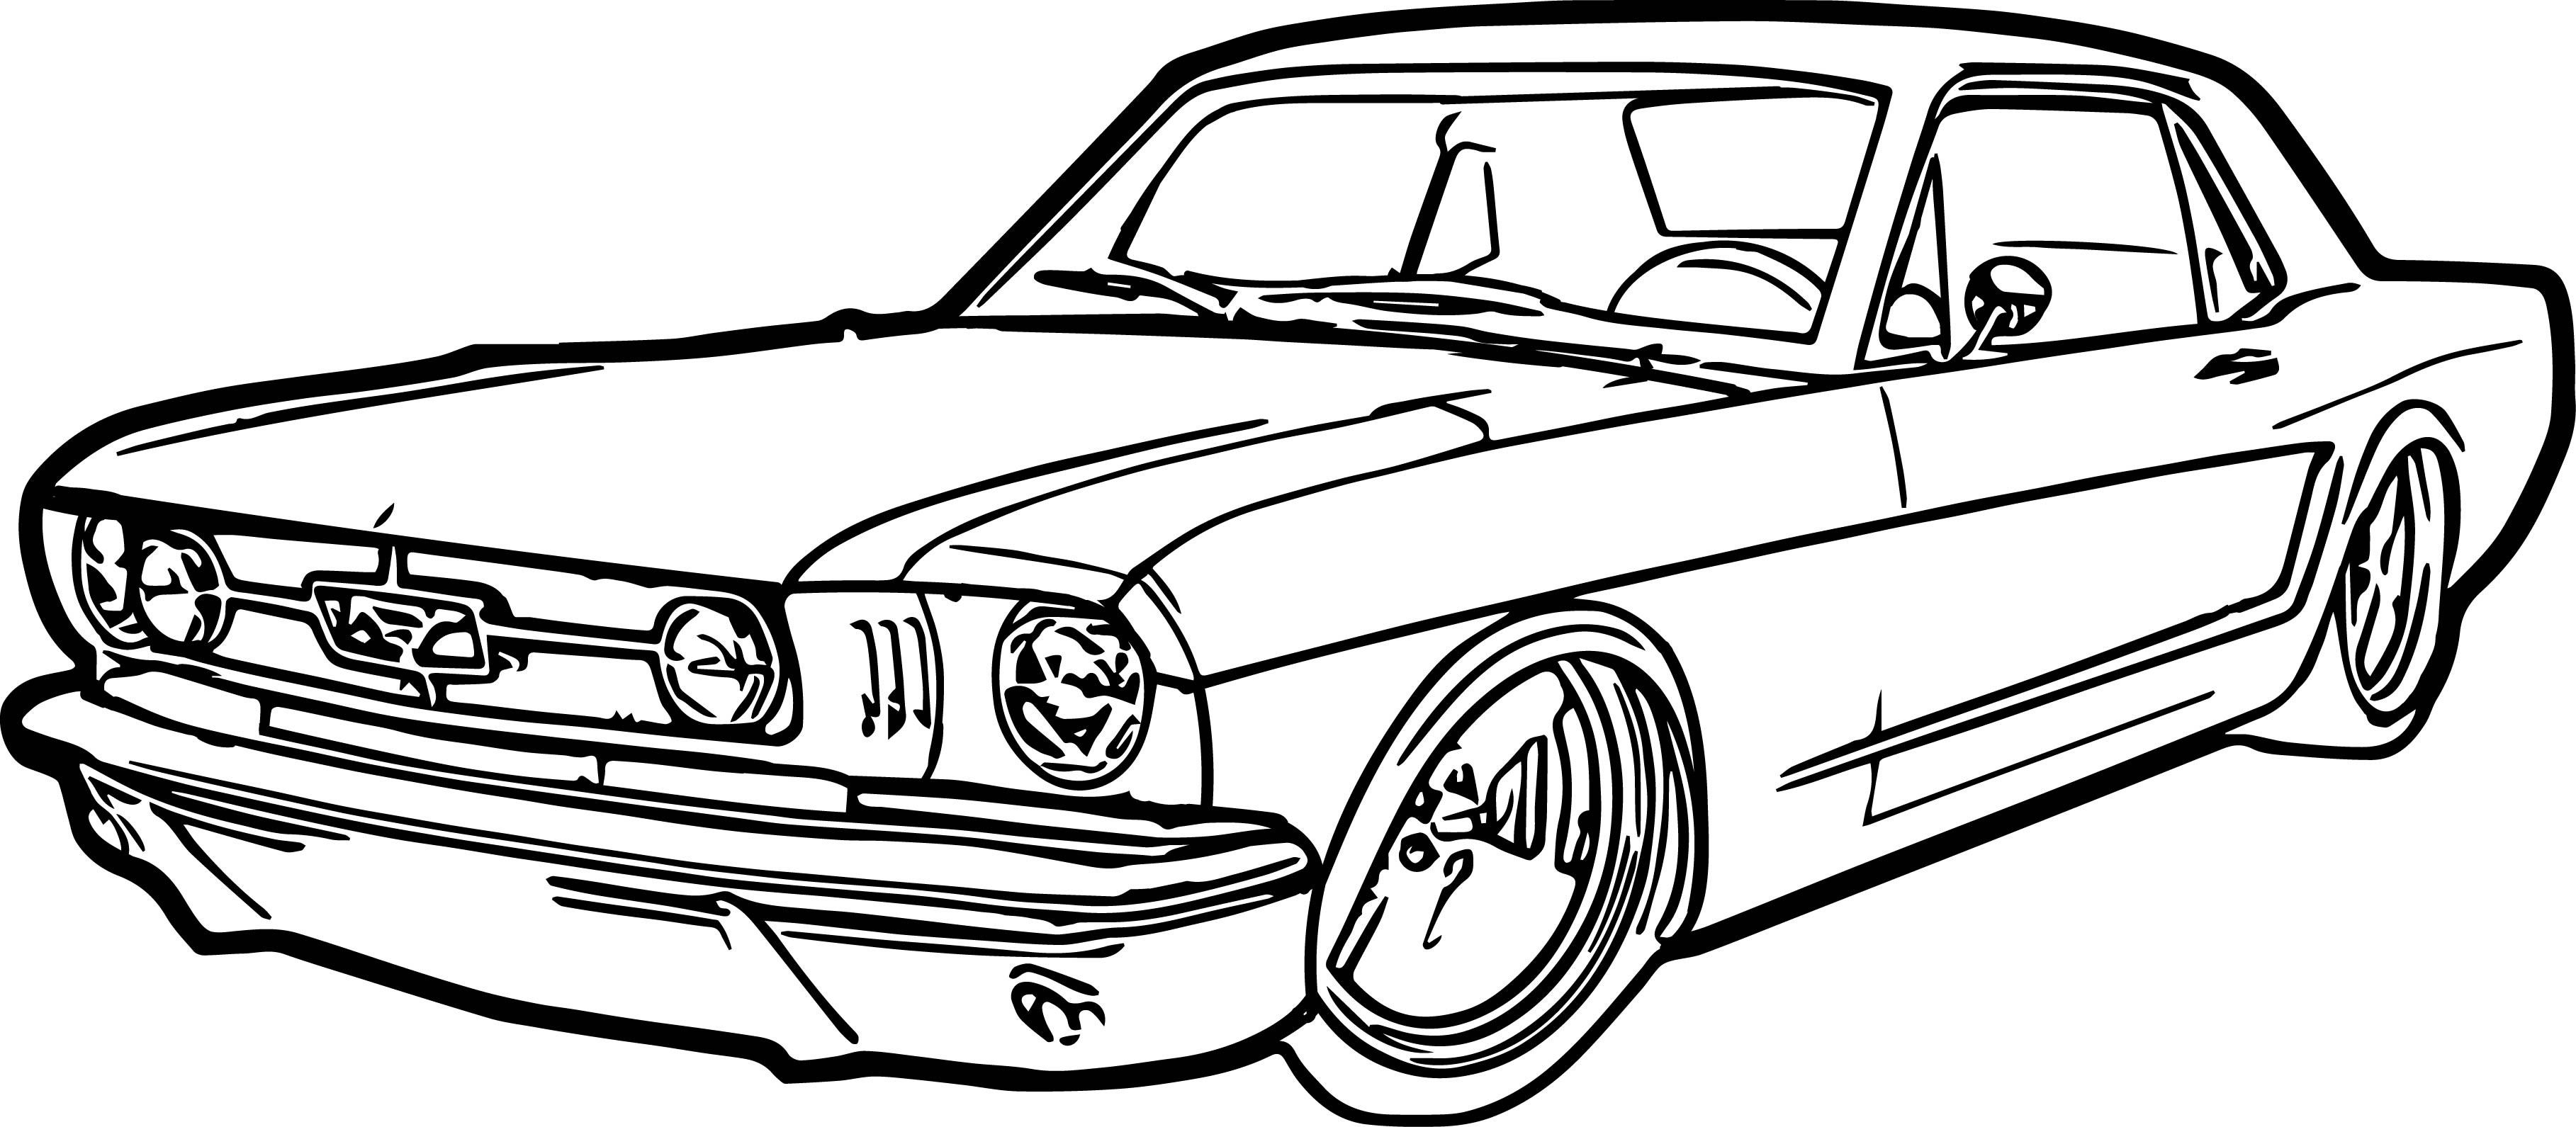 Hot Rod Car Coloring Pages At Getdrawings Com Free For